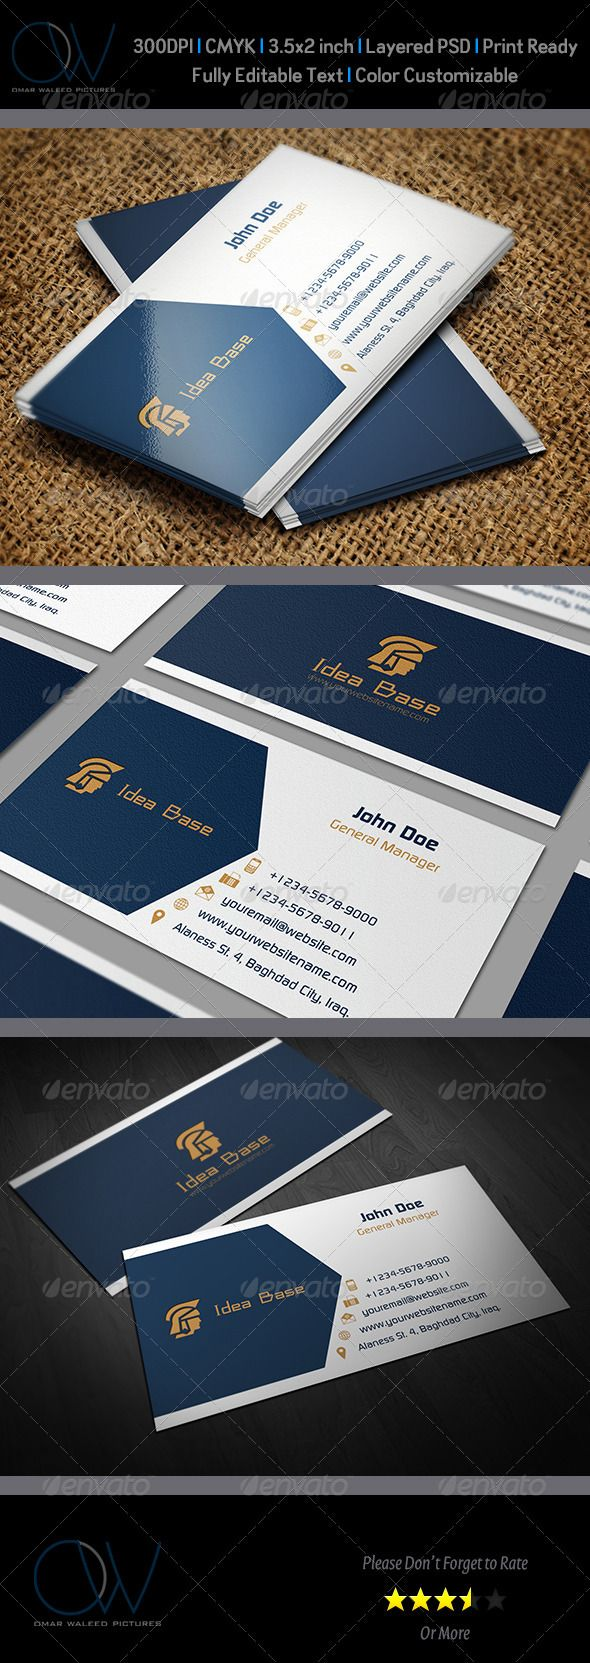 Idea Base Business Card